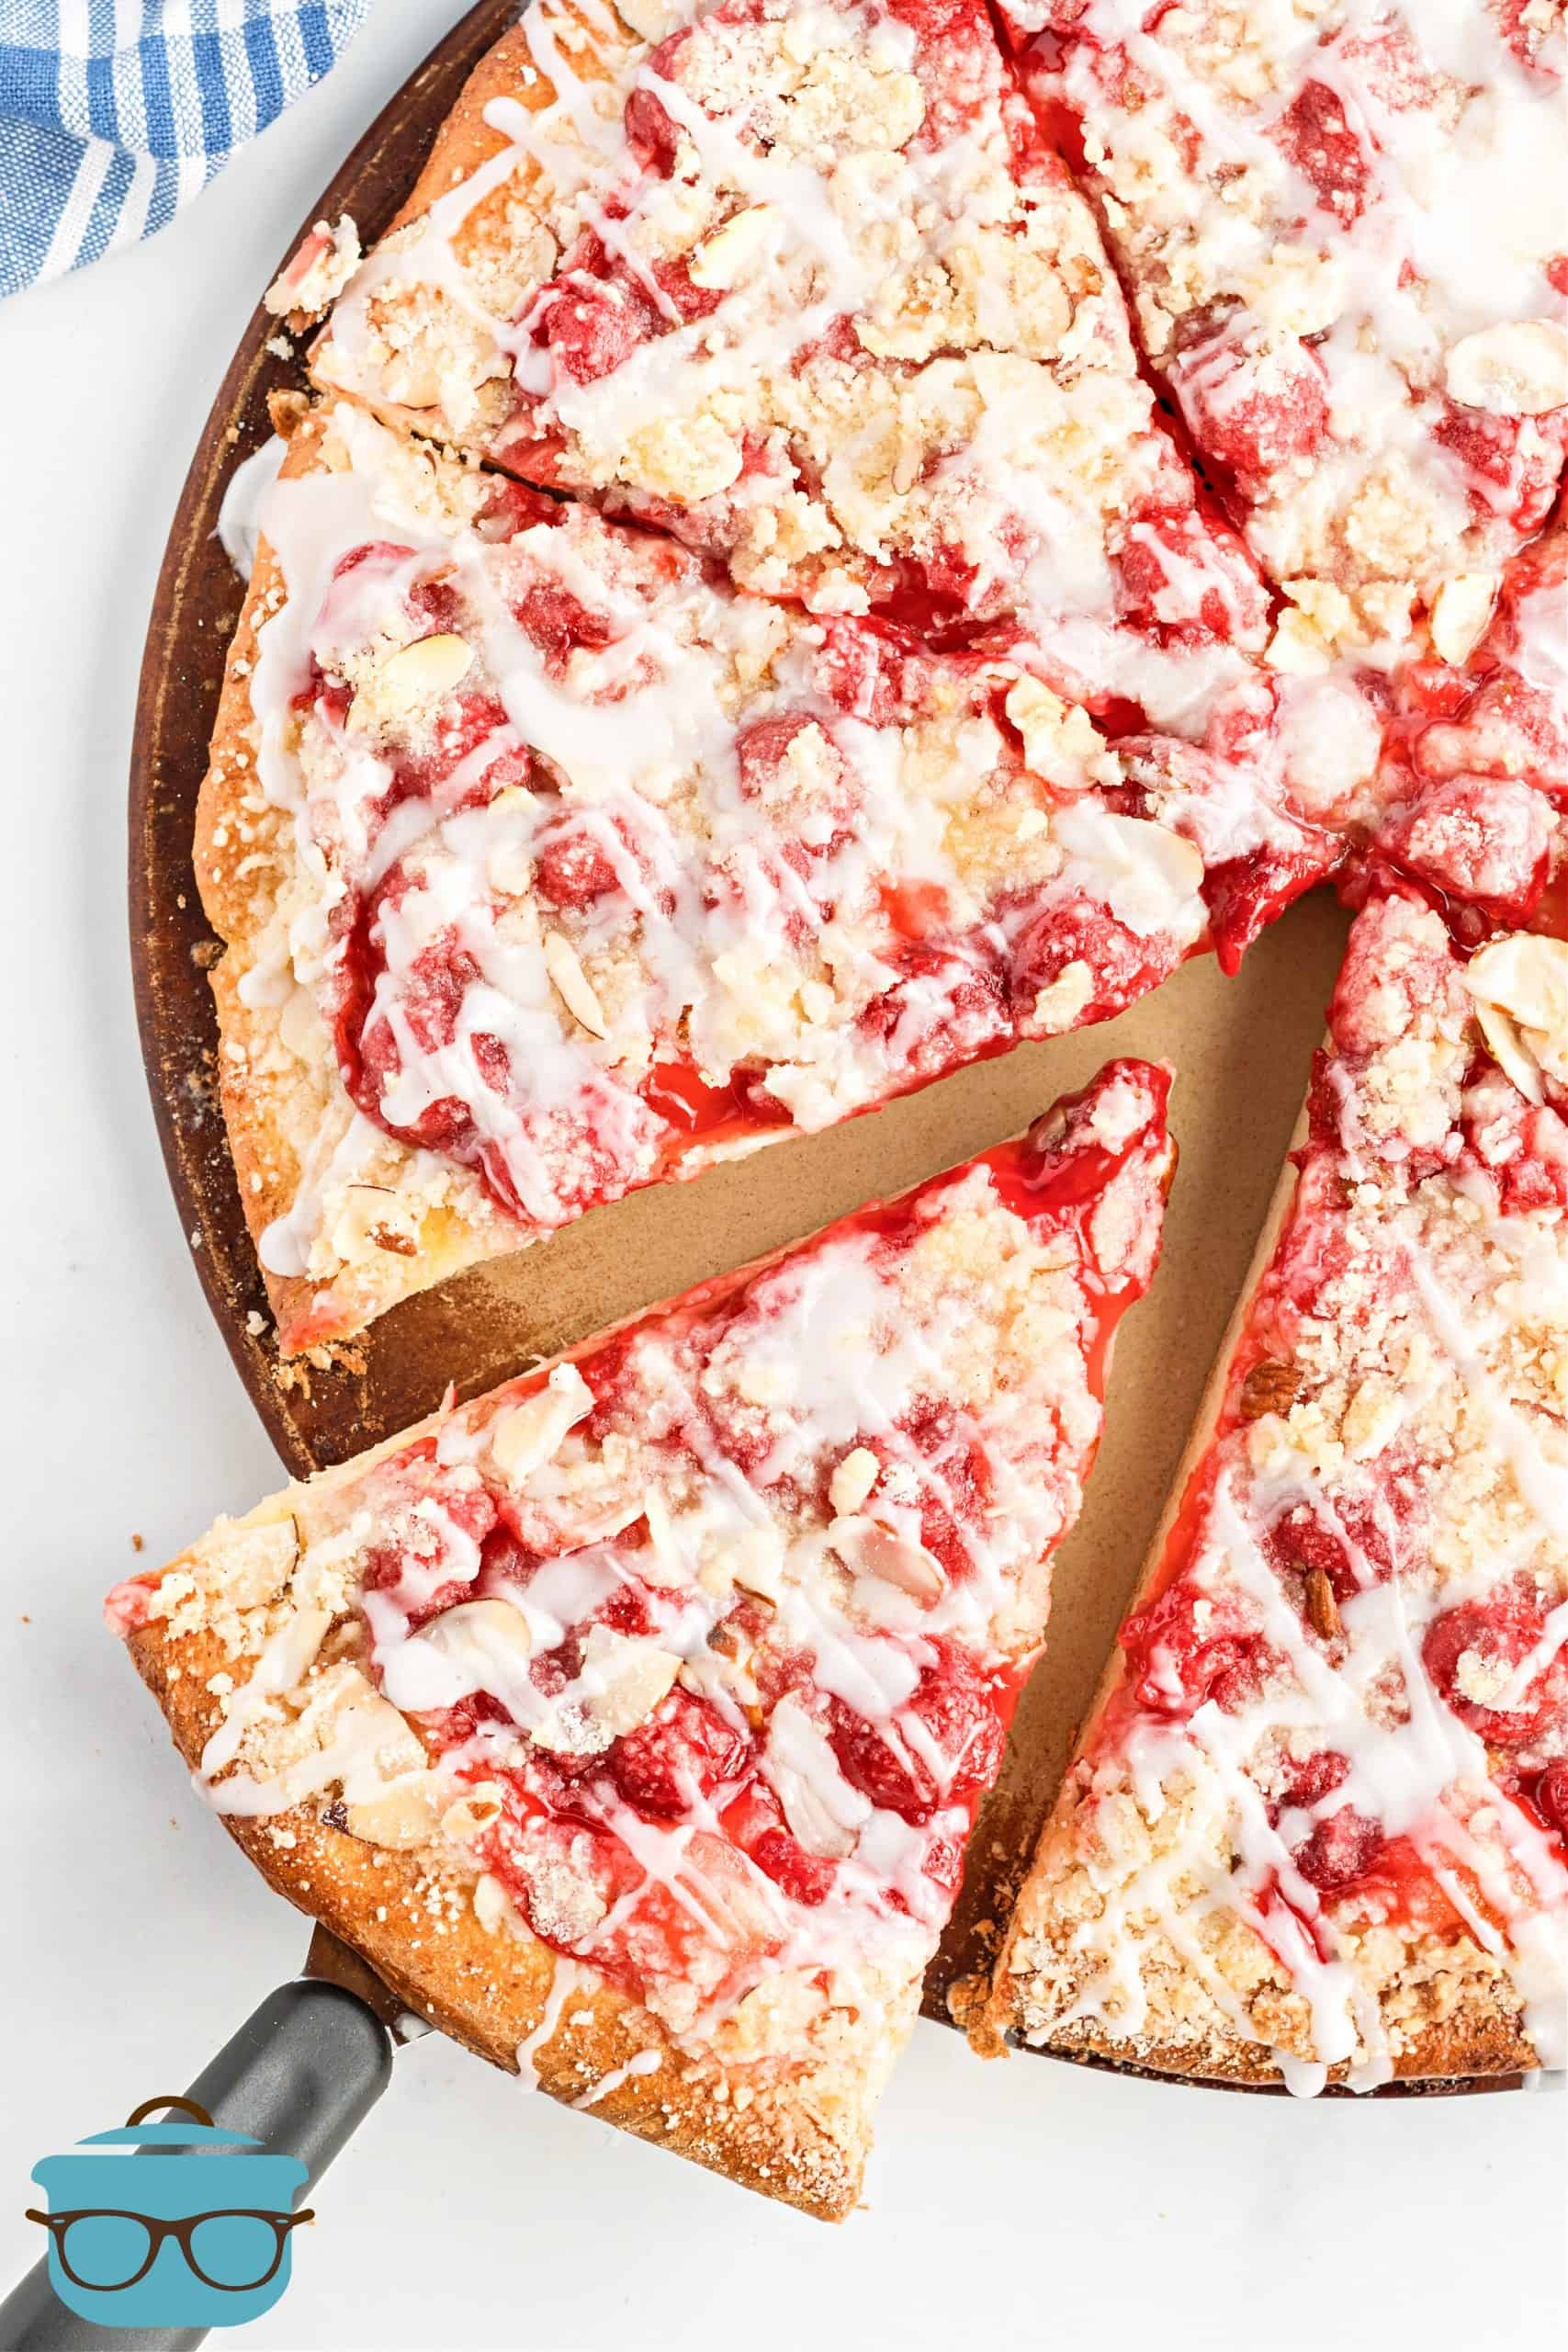 Whole cherry dessert pizza with streusel topping being shown with one slice being slightly removed from the rest of the pizza.